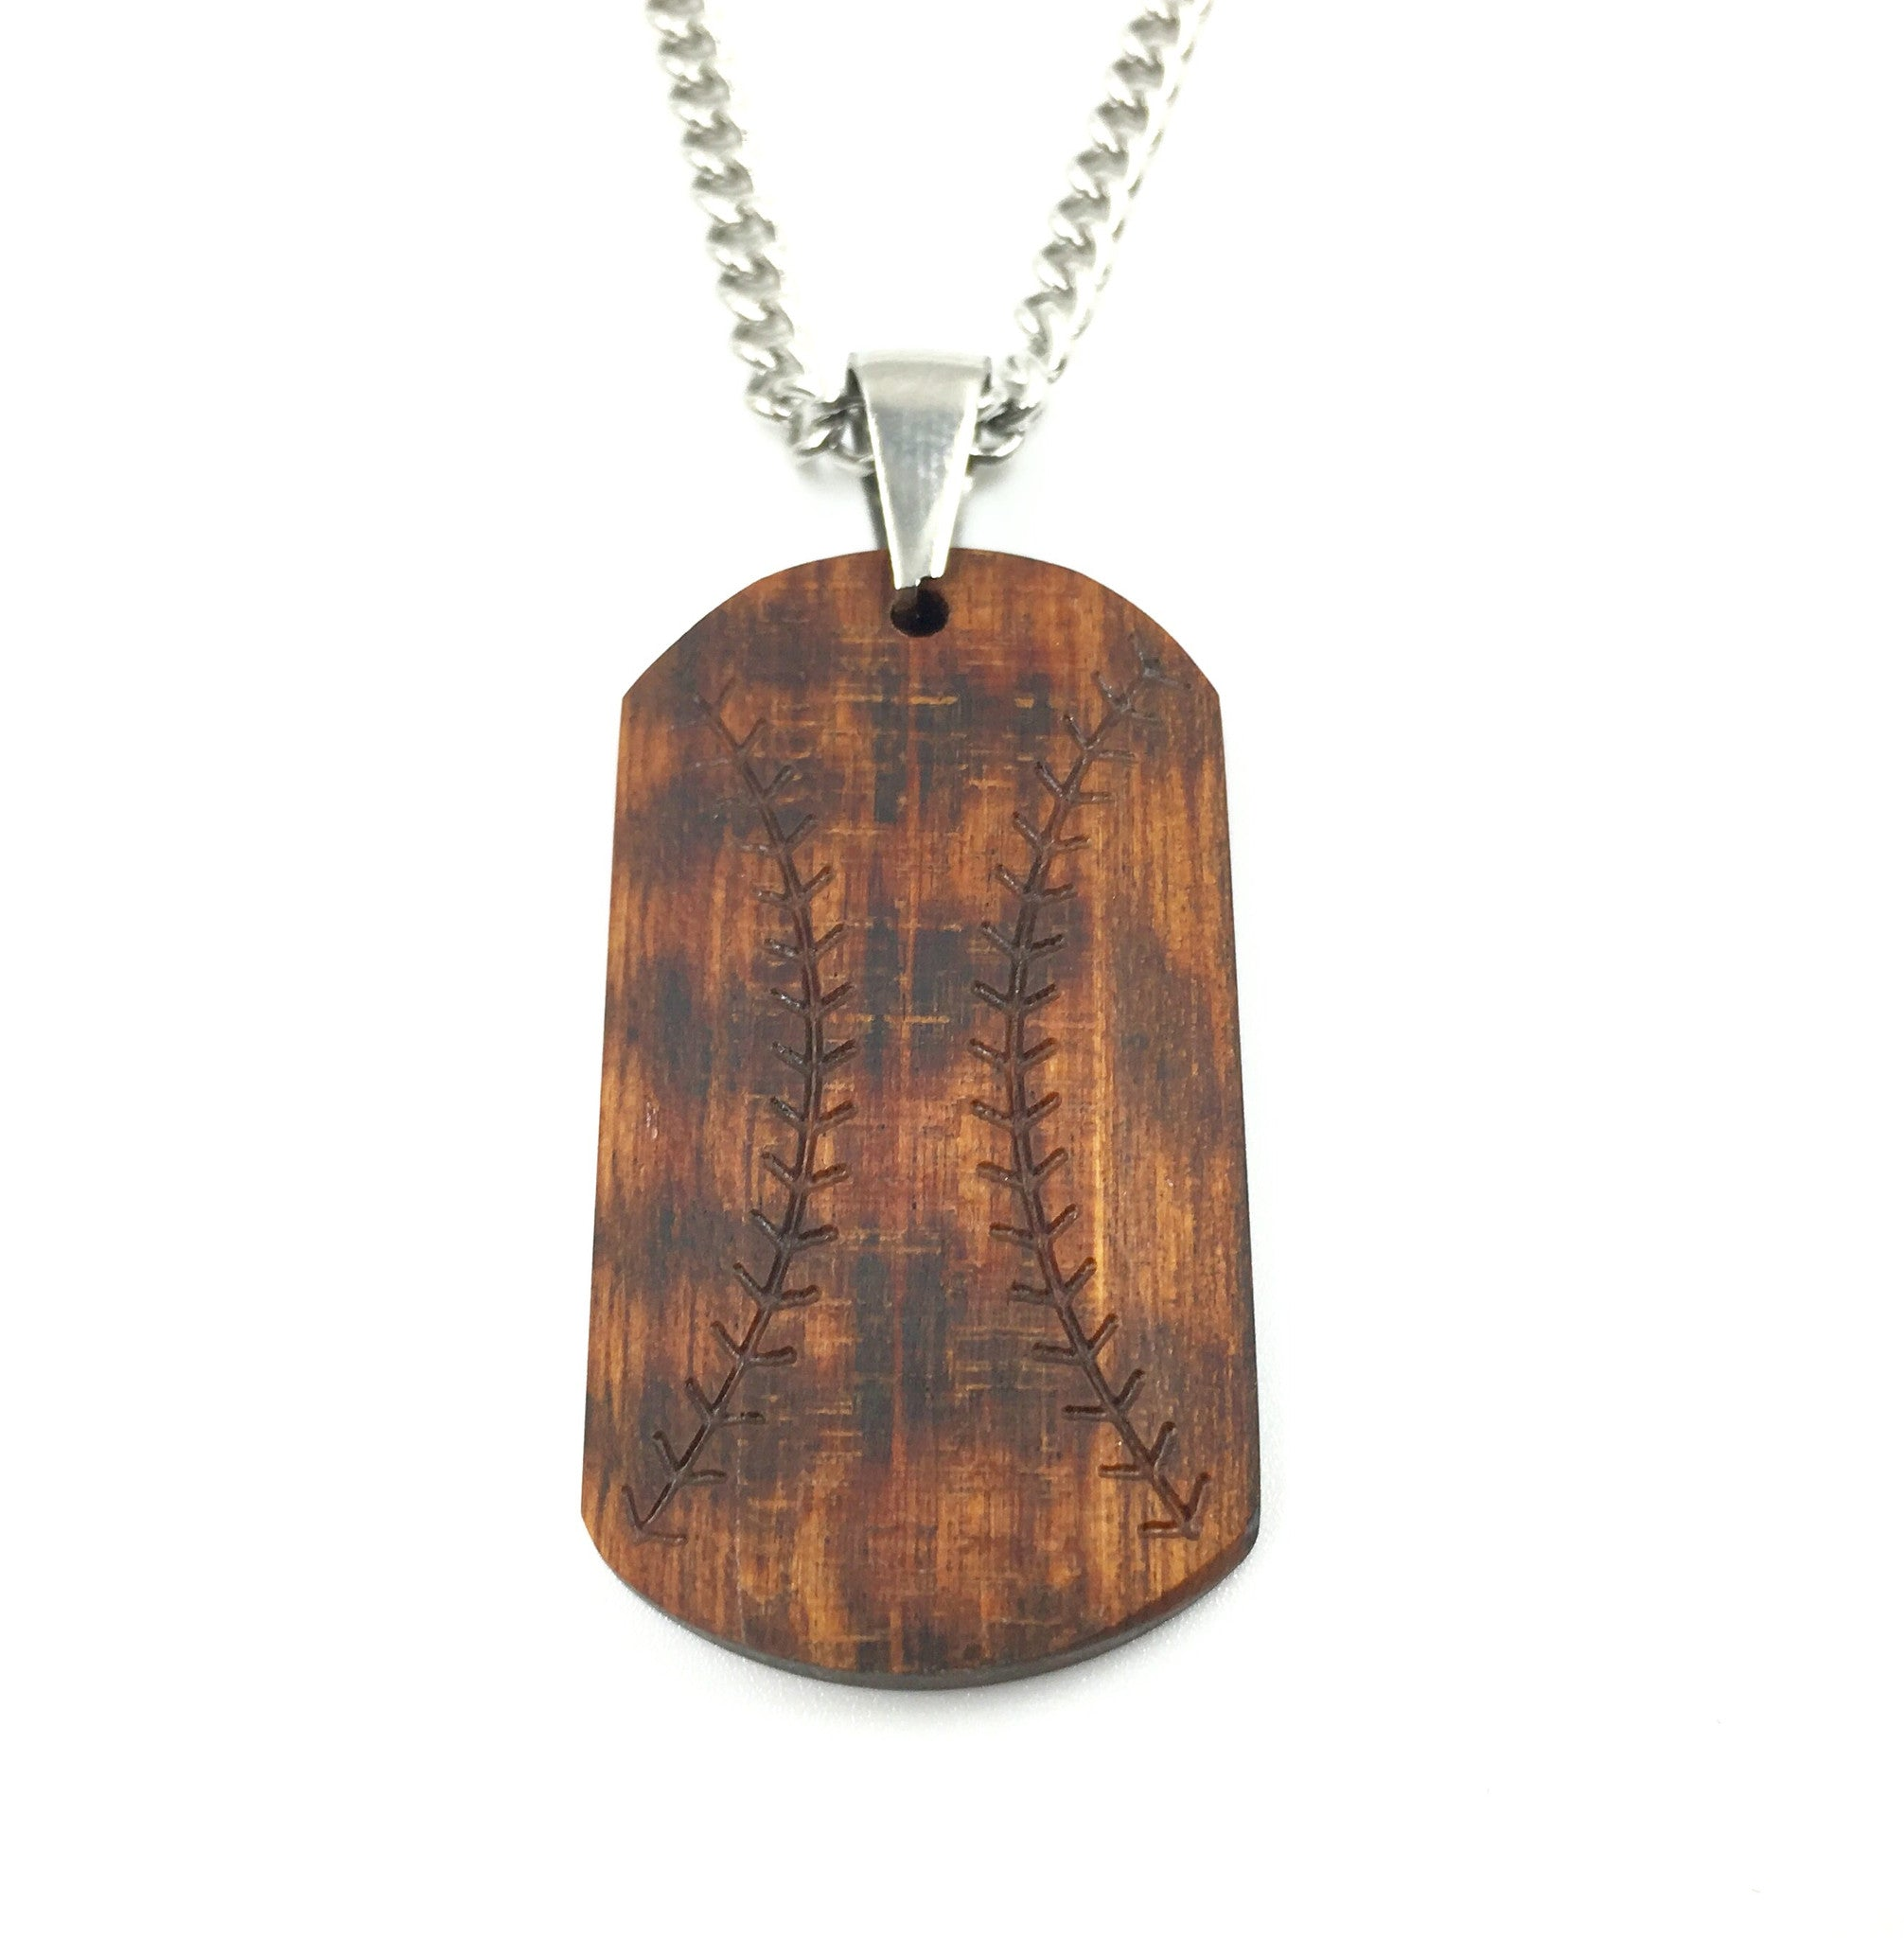 Rake Wood Baseball Bat Pendant and Chain Necklace (FREE SHIPPING)